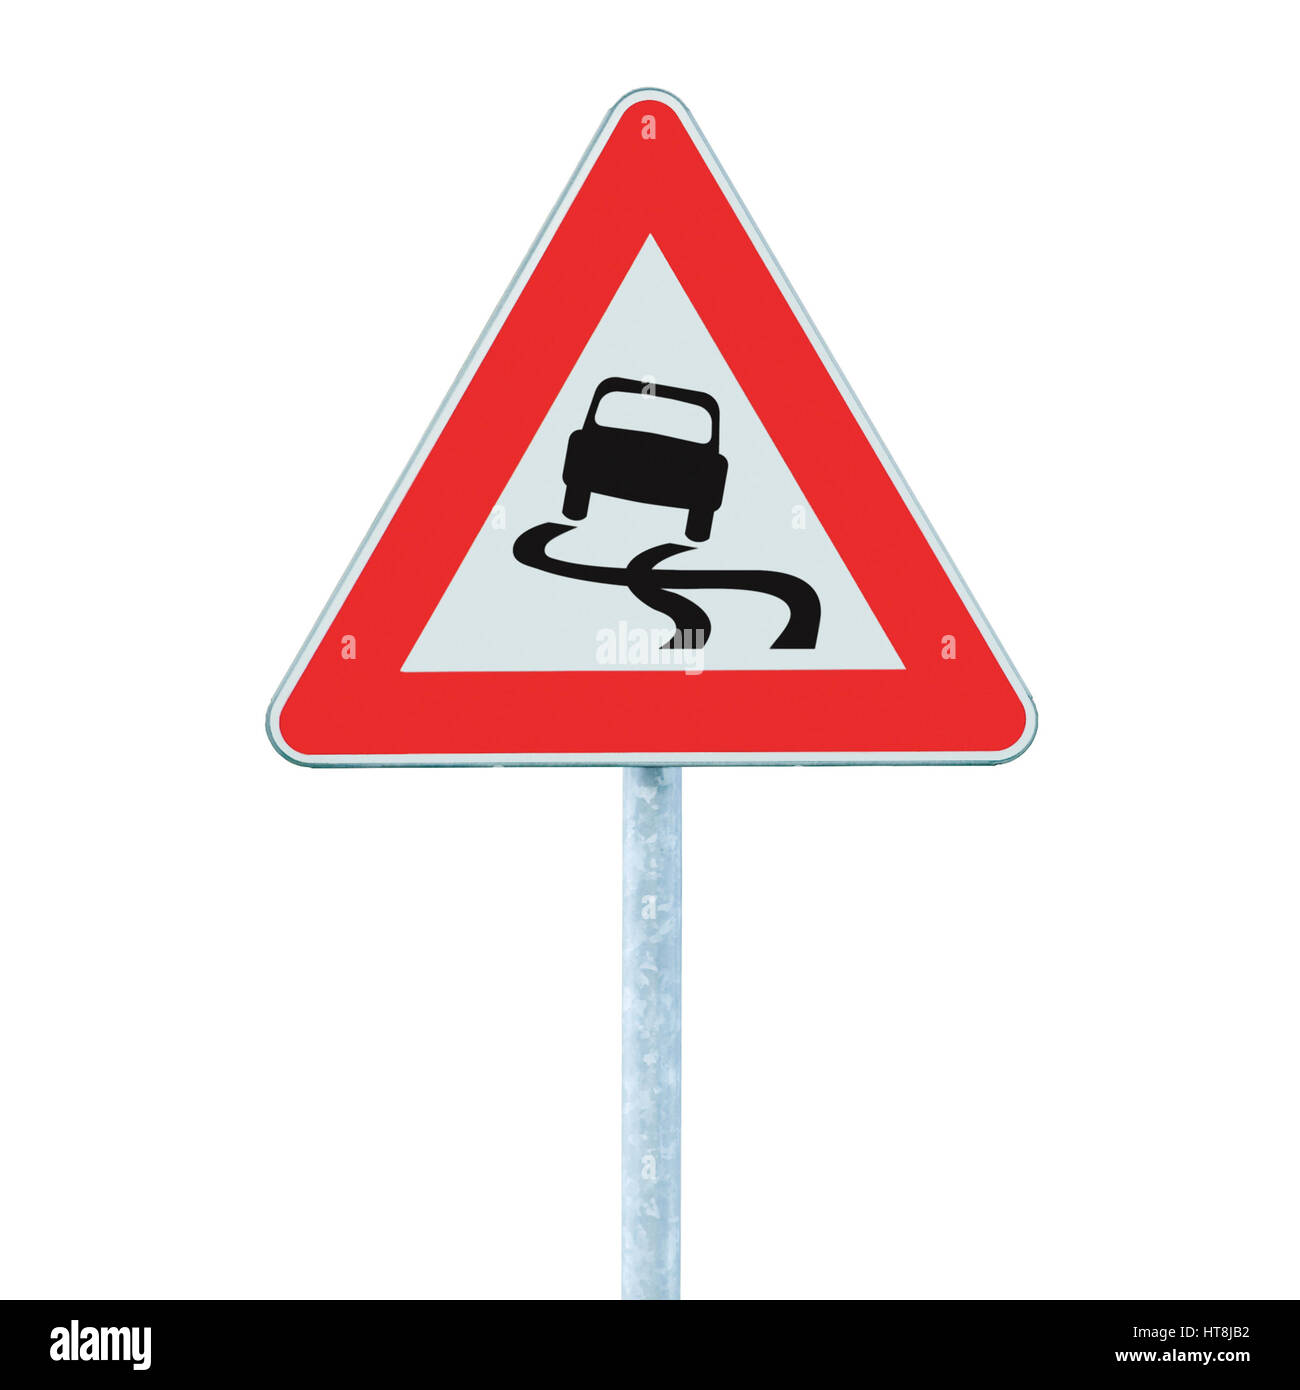 Slippery when wet road sign, isolated signpost and traffic signage - Stock Image